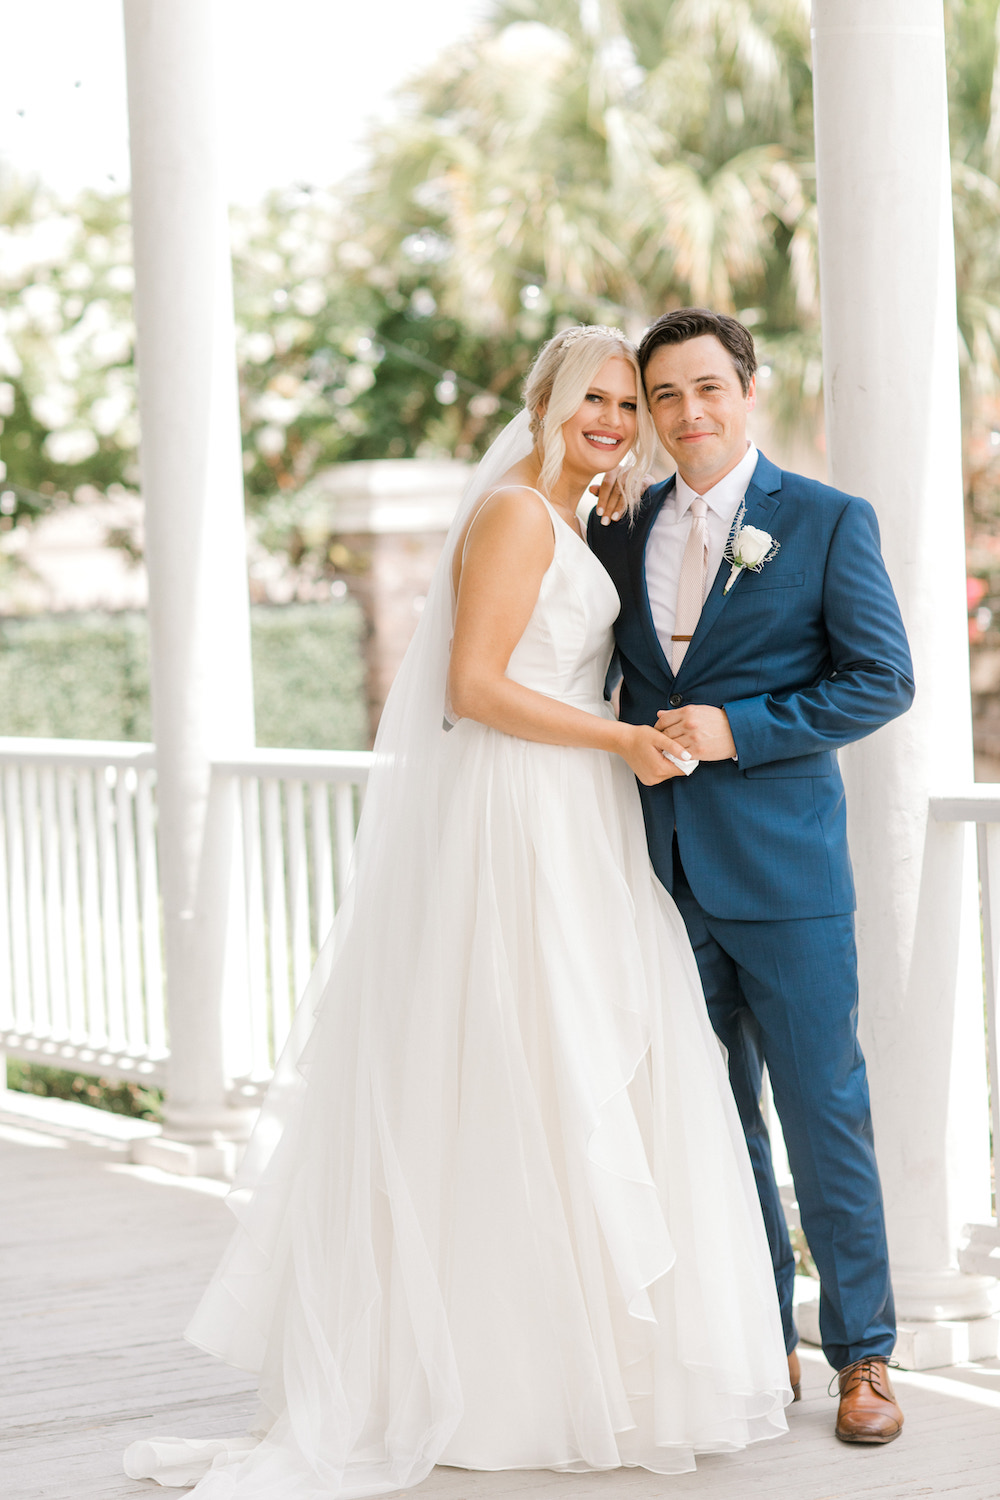 Bride and groom smiling on a classic southern porch